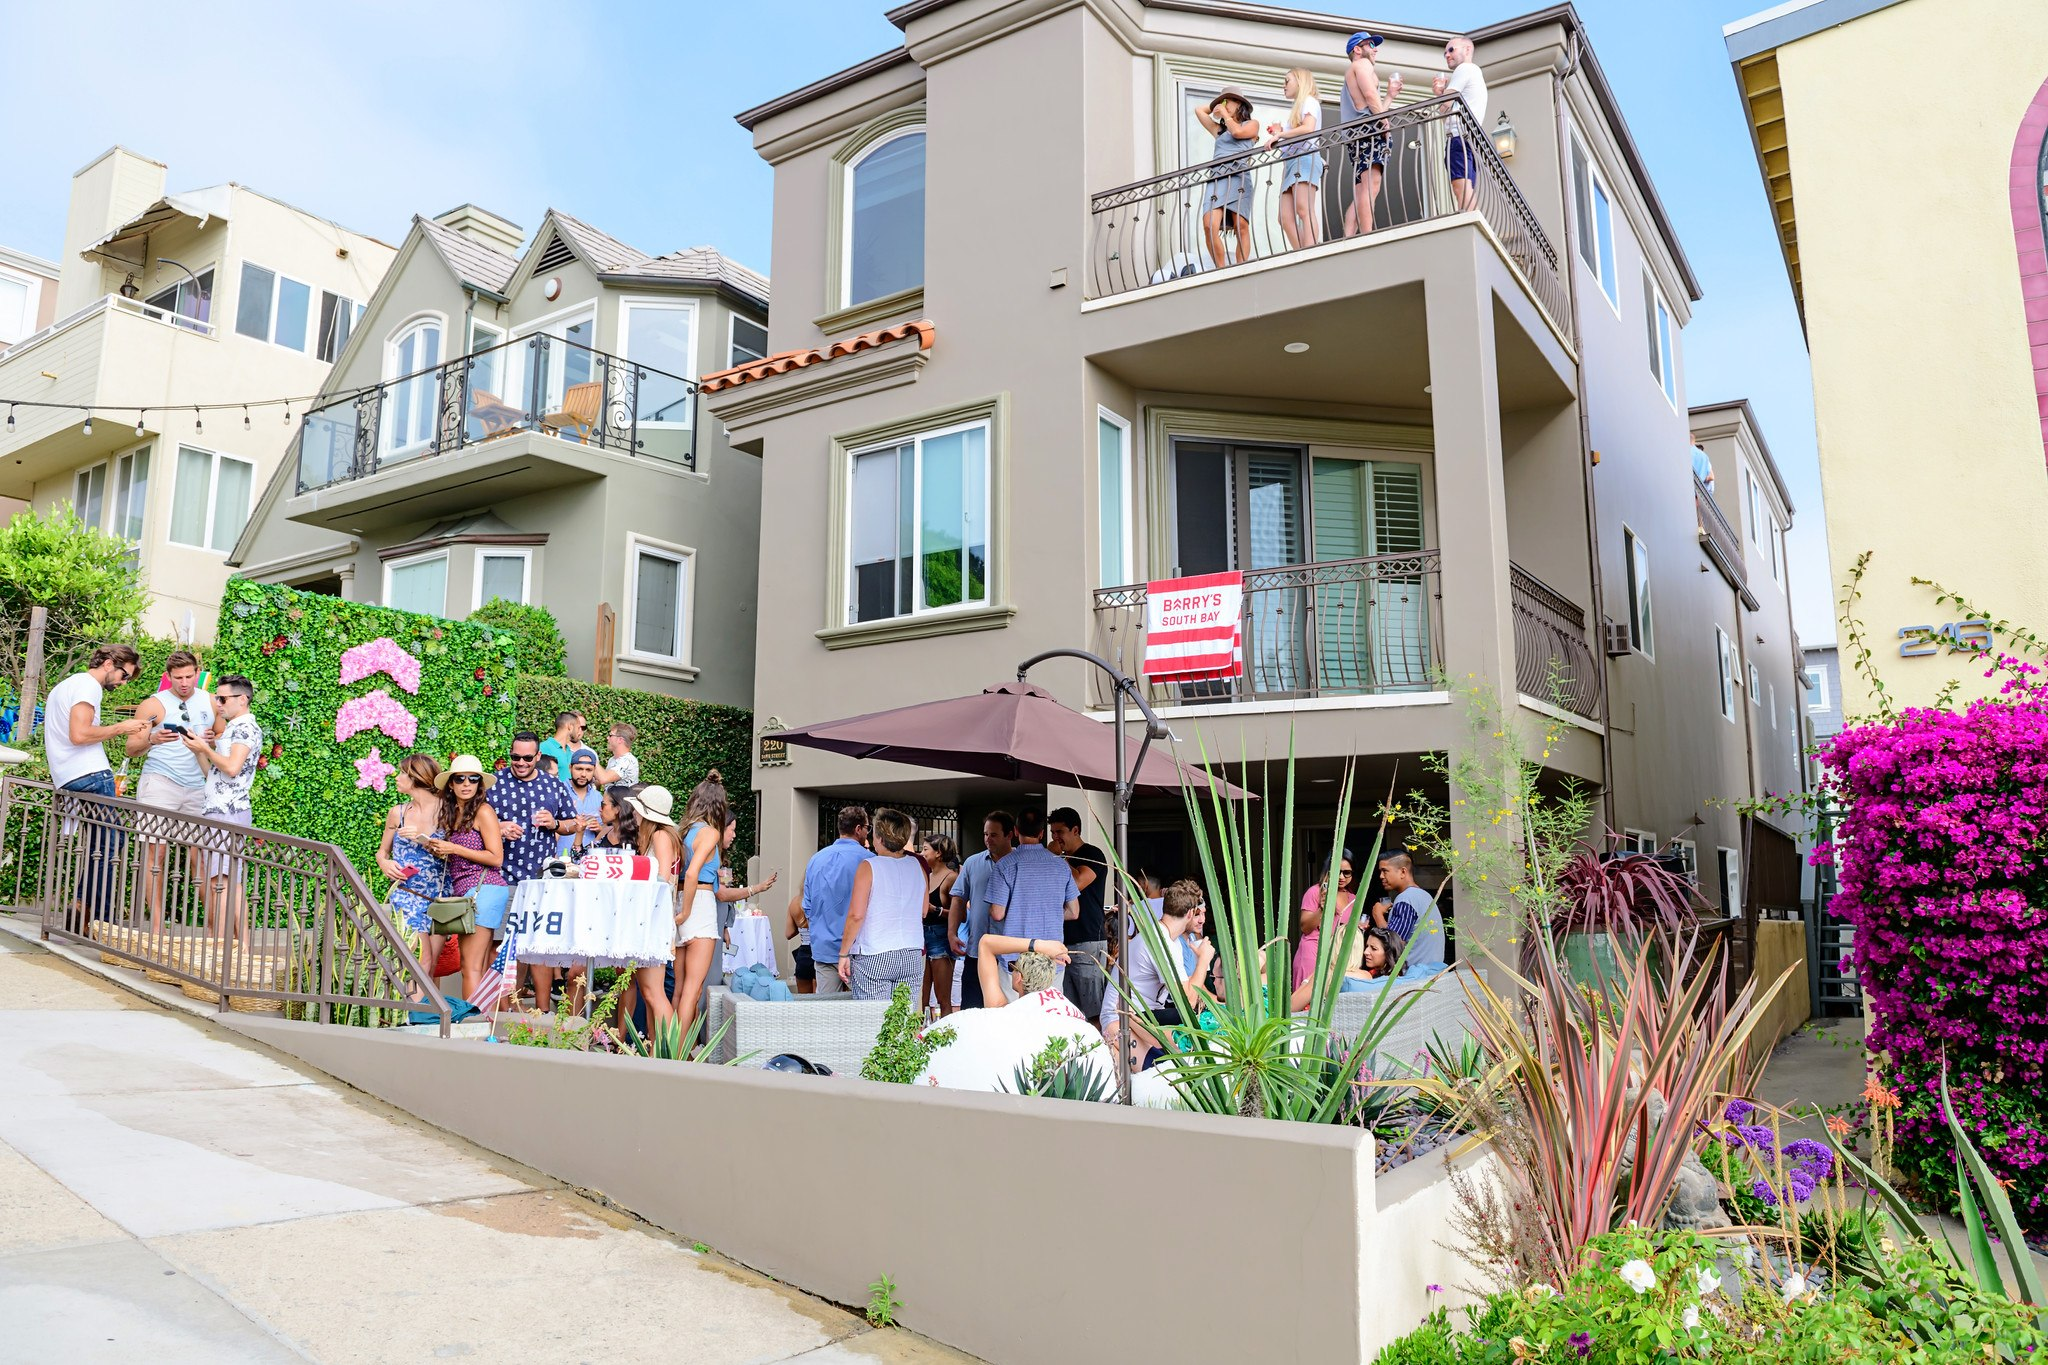 Gathering at Barry's Beach House event as seen from the street with pink floral logo and living wall visible on patio